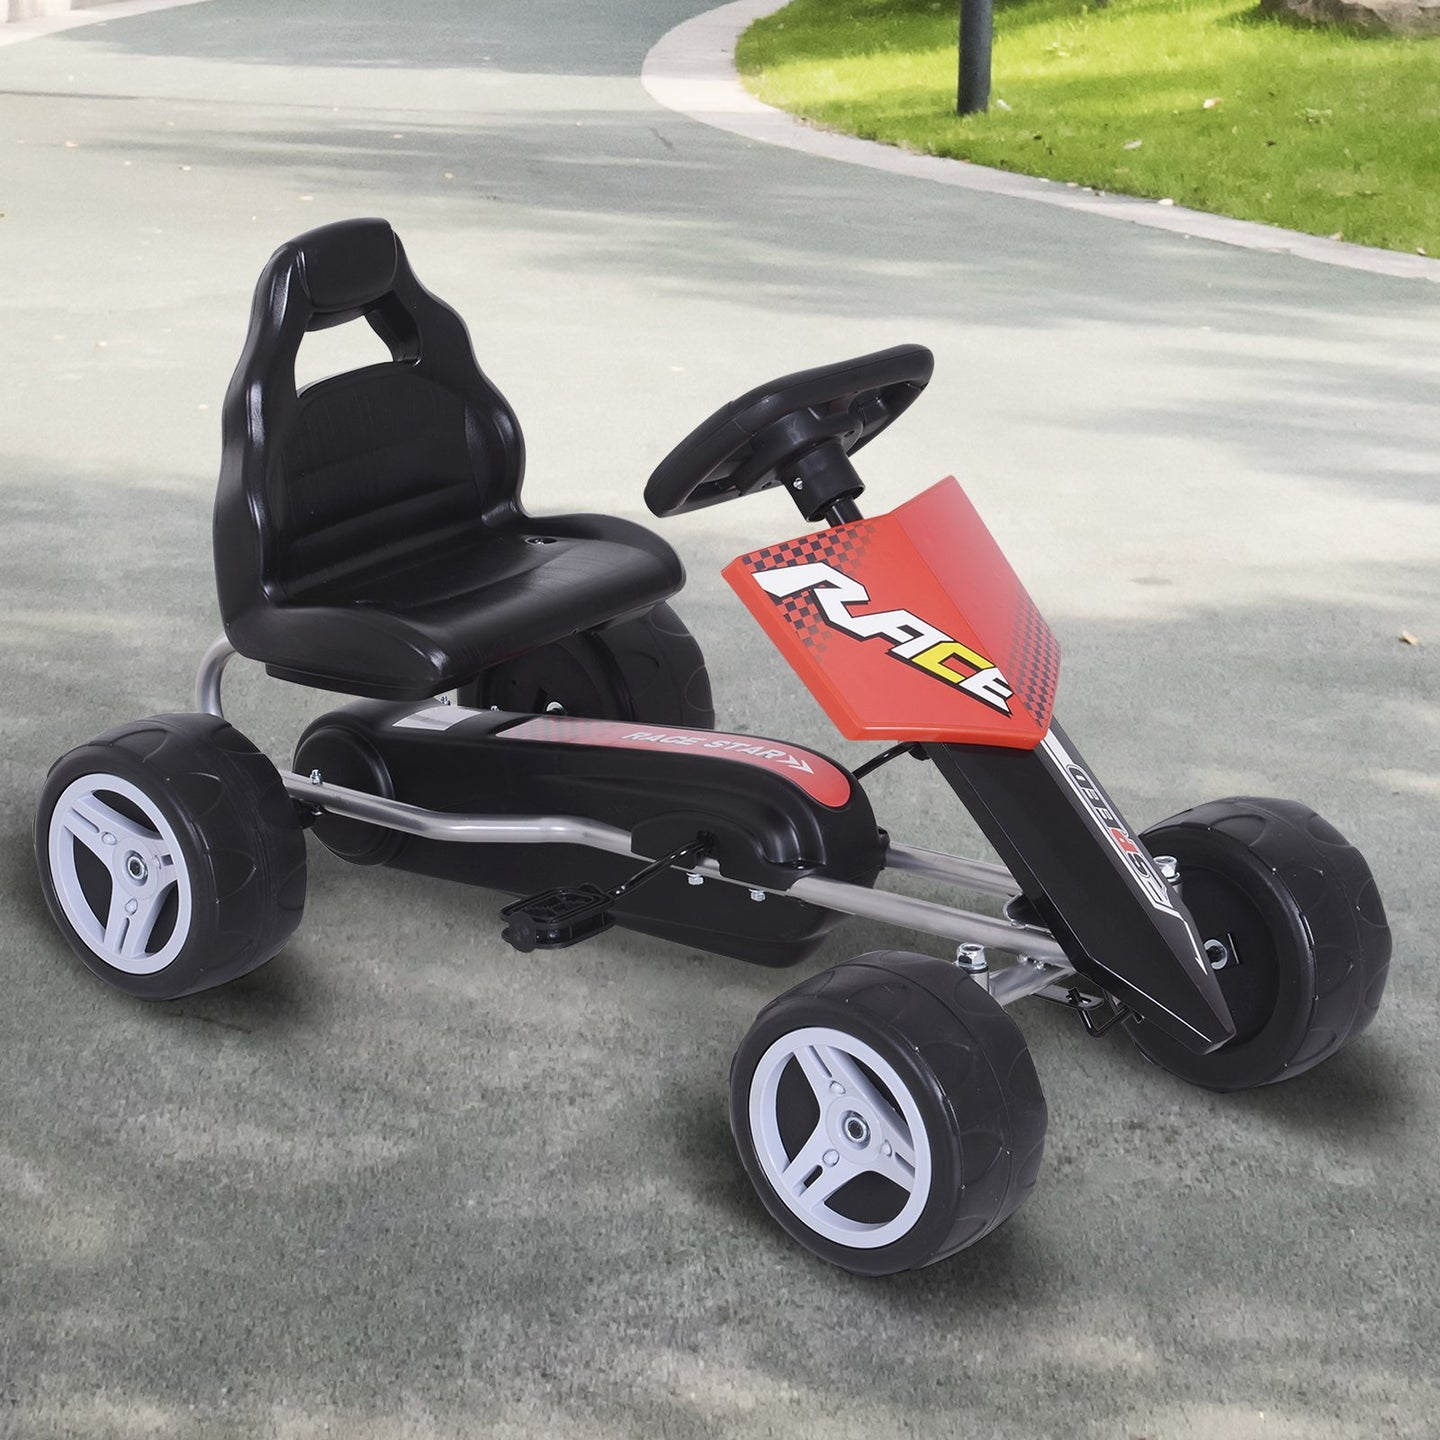 HOMCOM Kids Pedal Go Kart Ride-on, 80Lx49Wx50Hcm-Red/Black